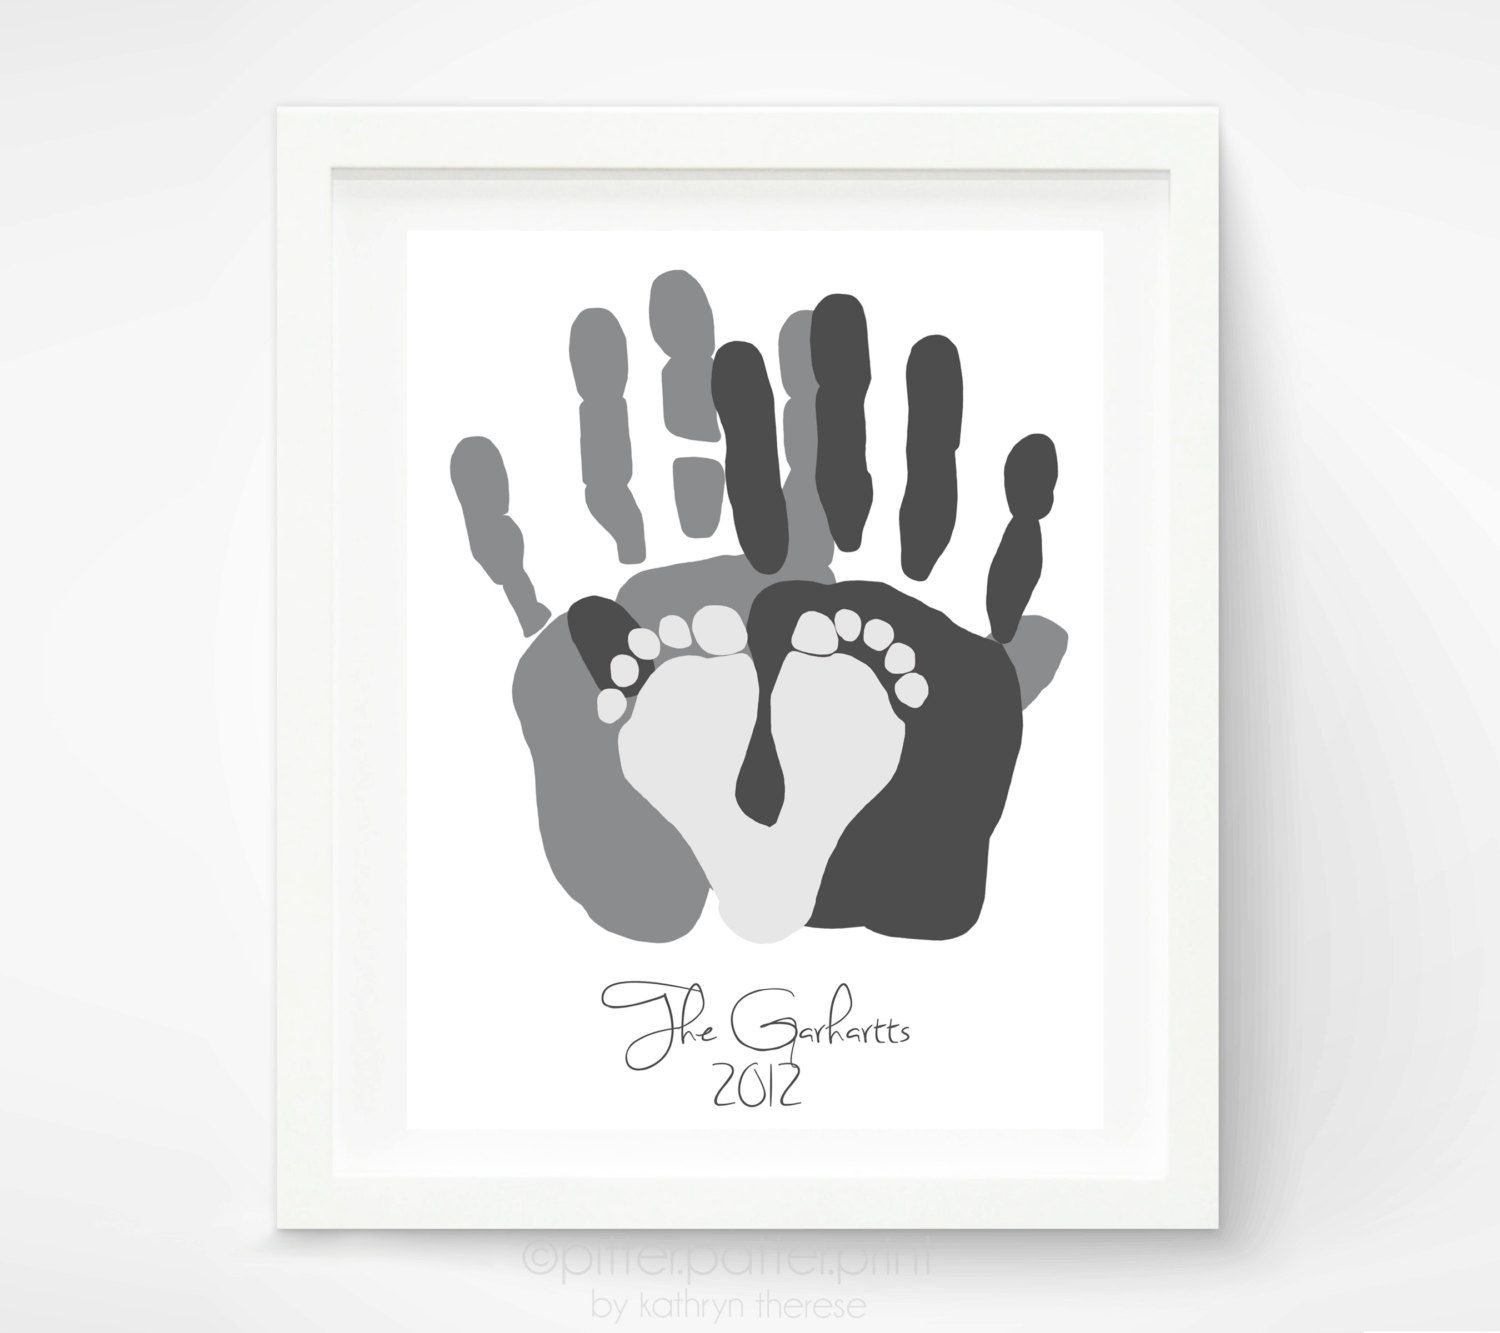 Personalized family portrait gift for new dad first fathers personalized family portrait gift for new dad first fathers day gift baby footprint negle Gallery